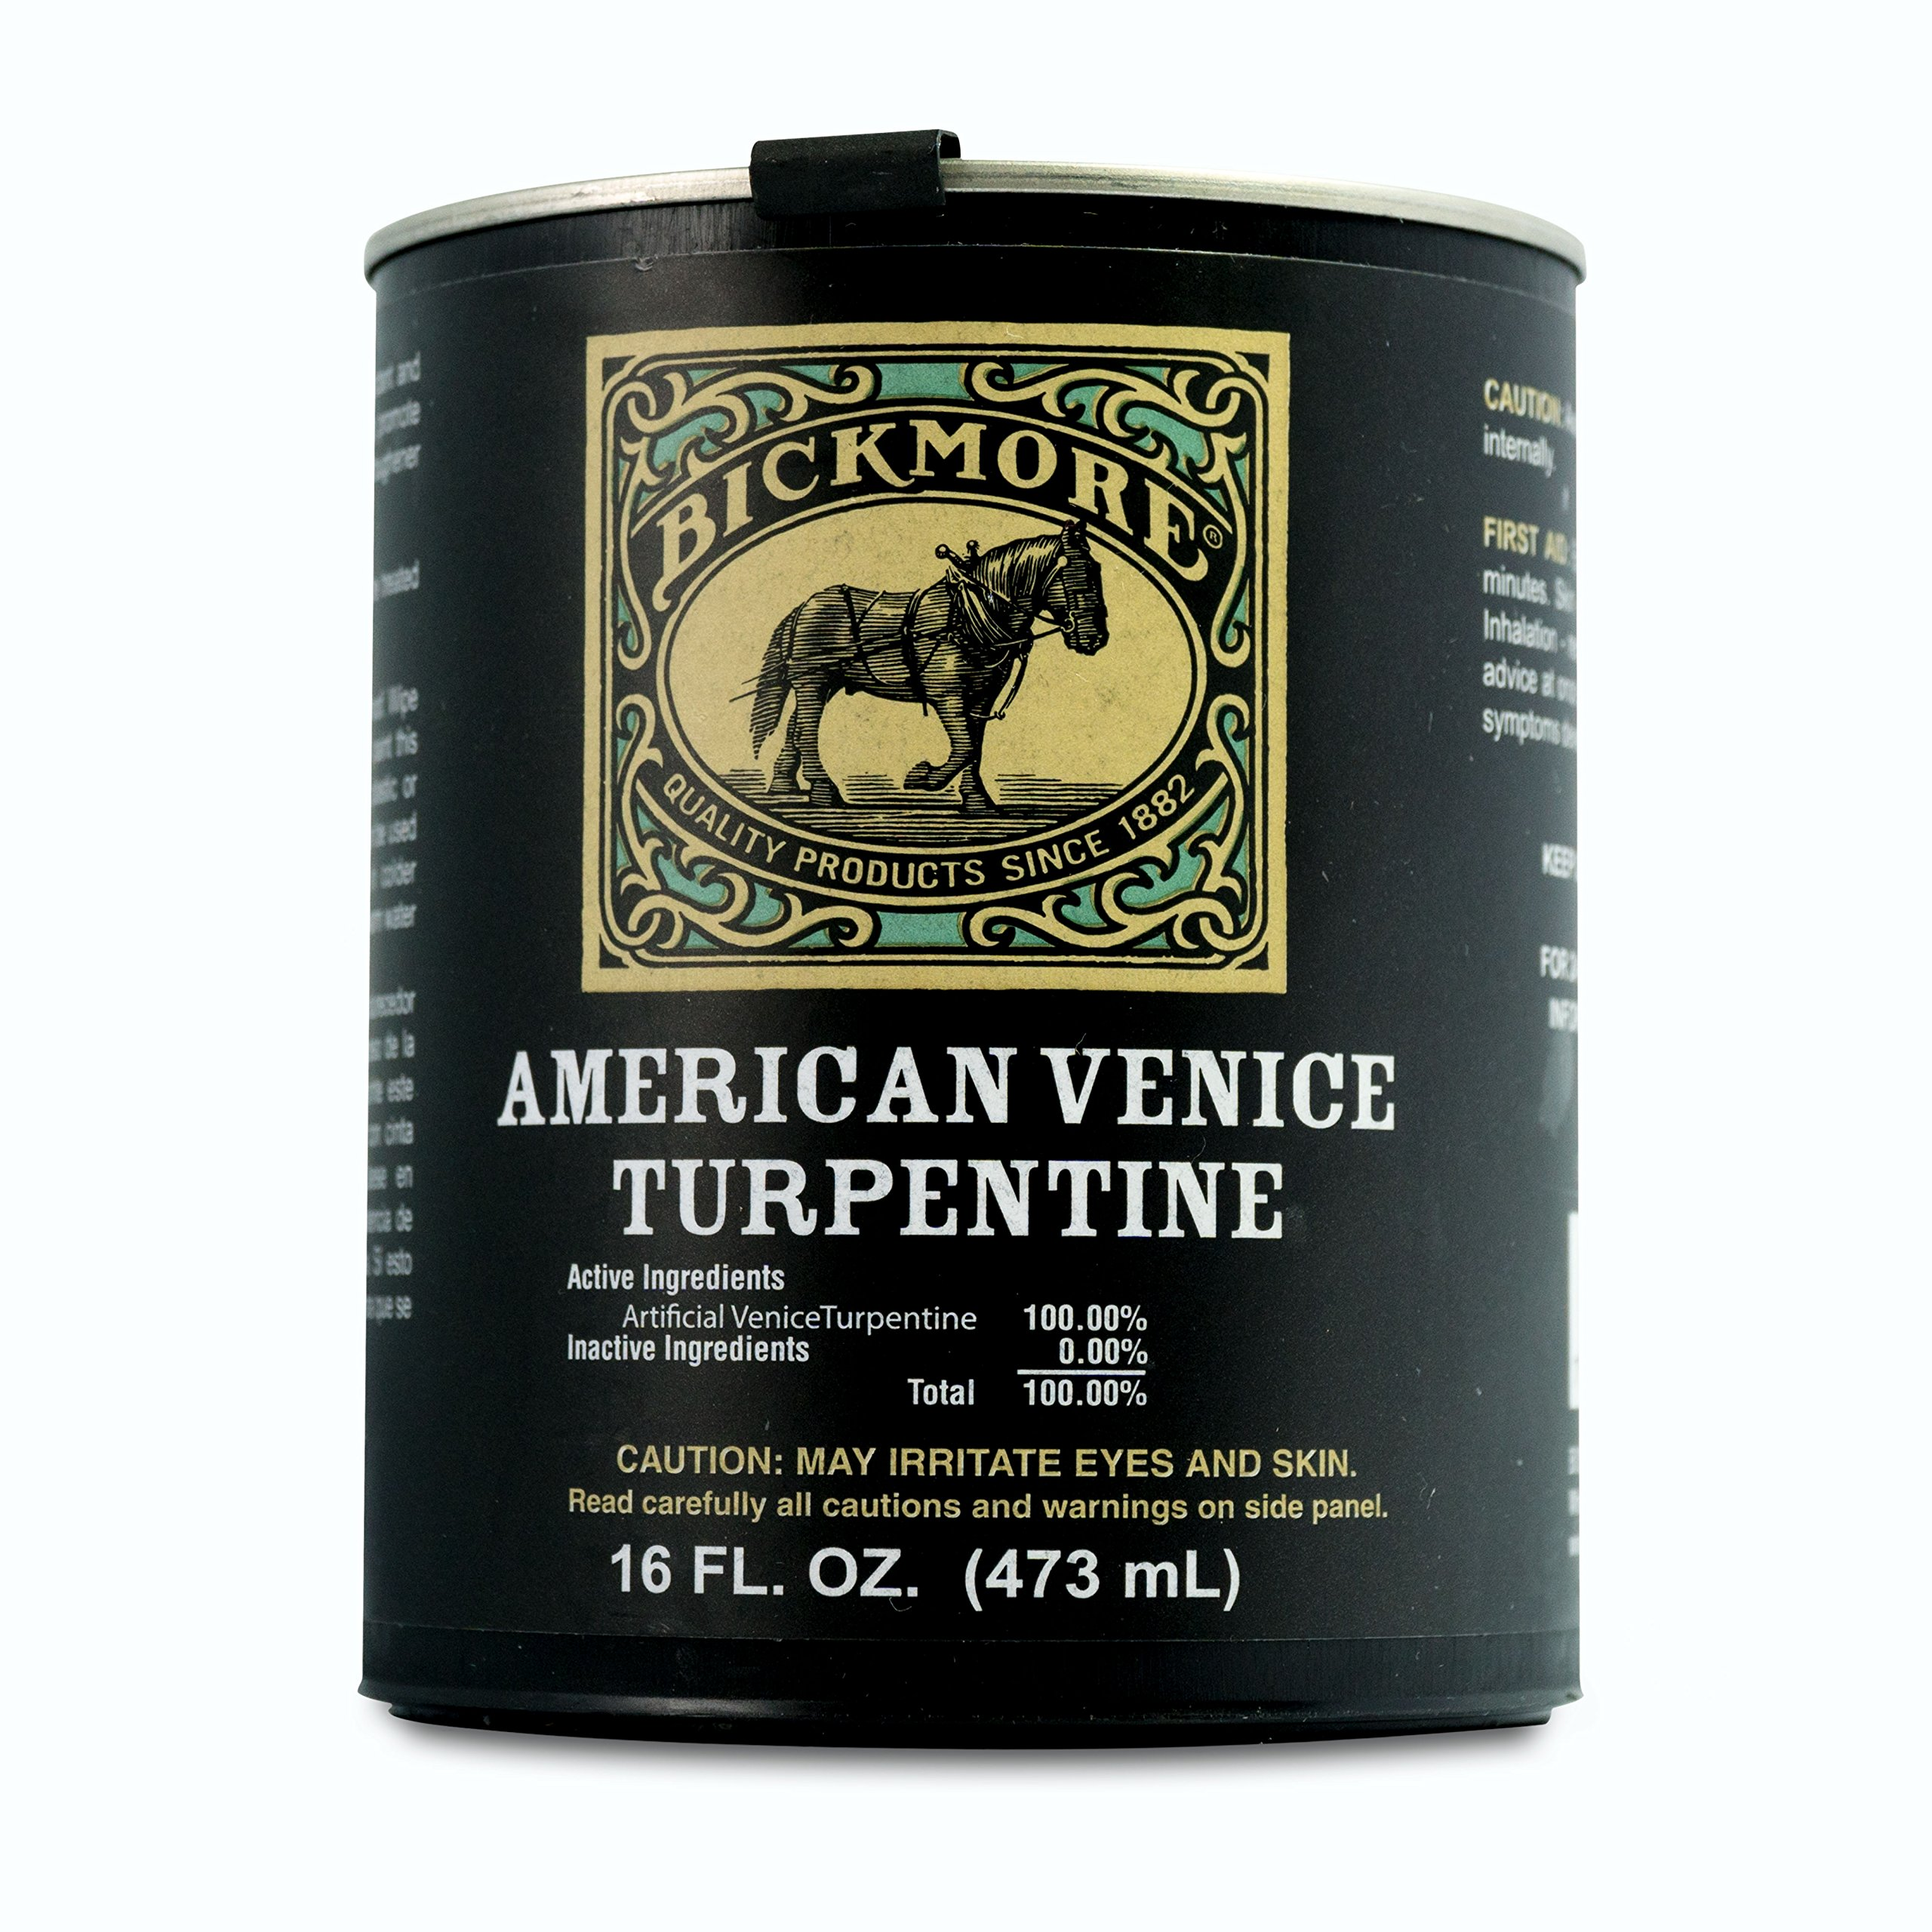 Bickmore American Venice Turpentine Pint for Horses - Promores New Hoof Growth and Prevents Quarter Cracks and Split Hooves